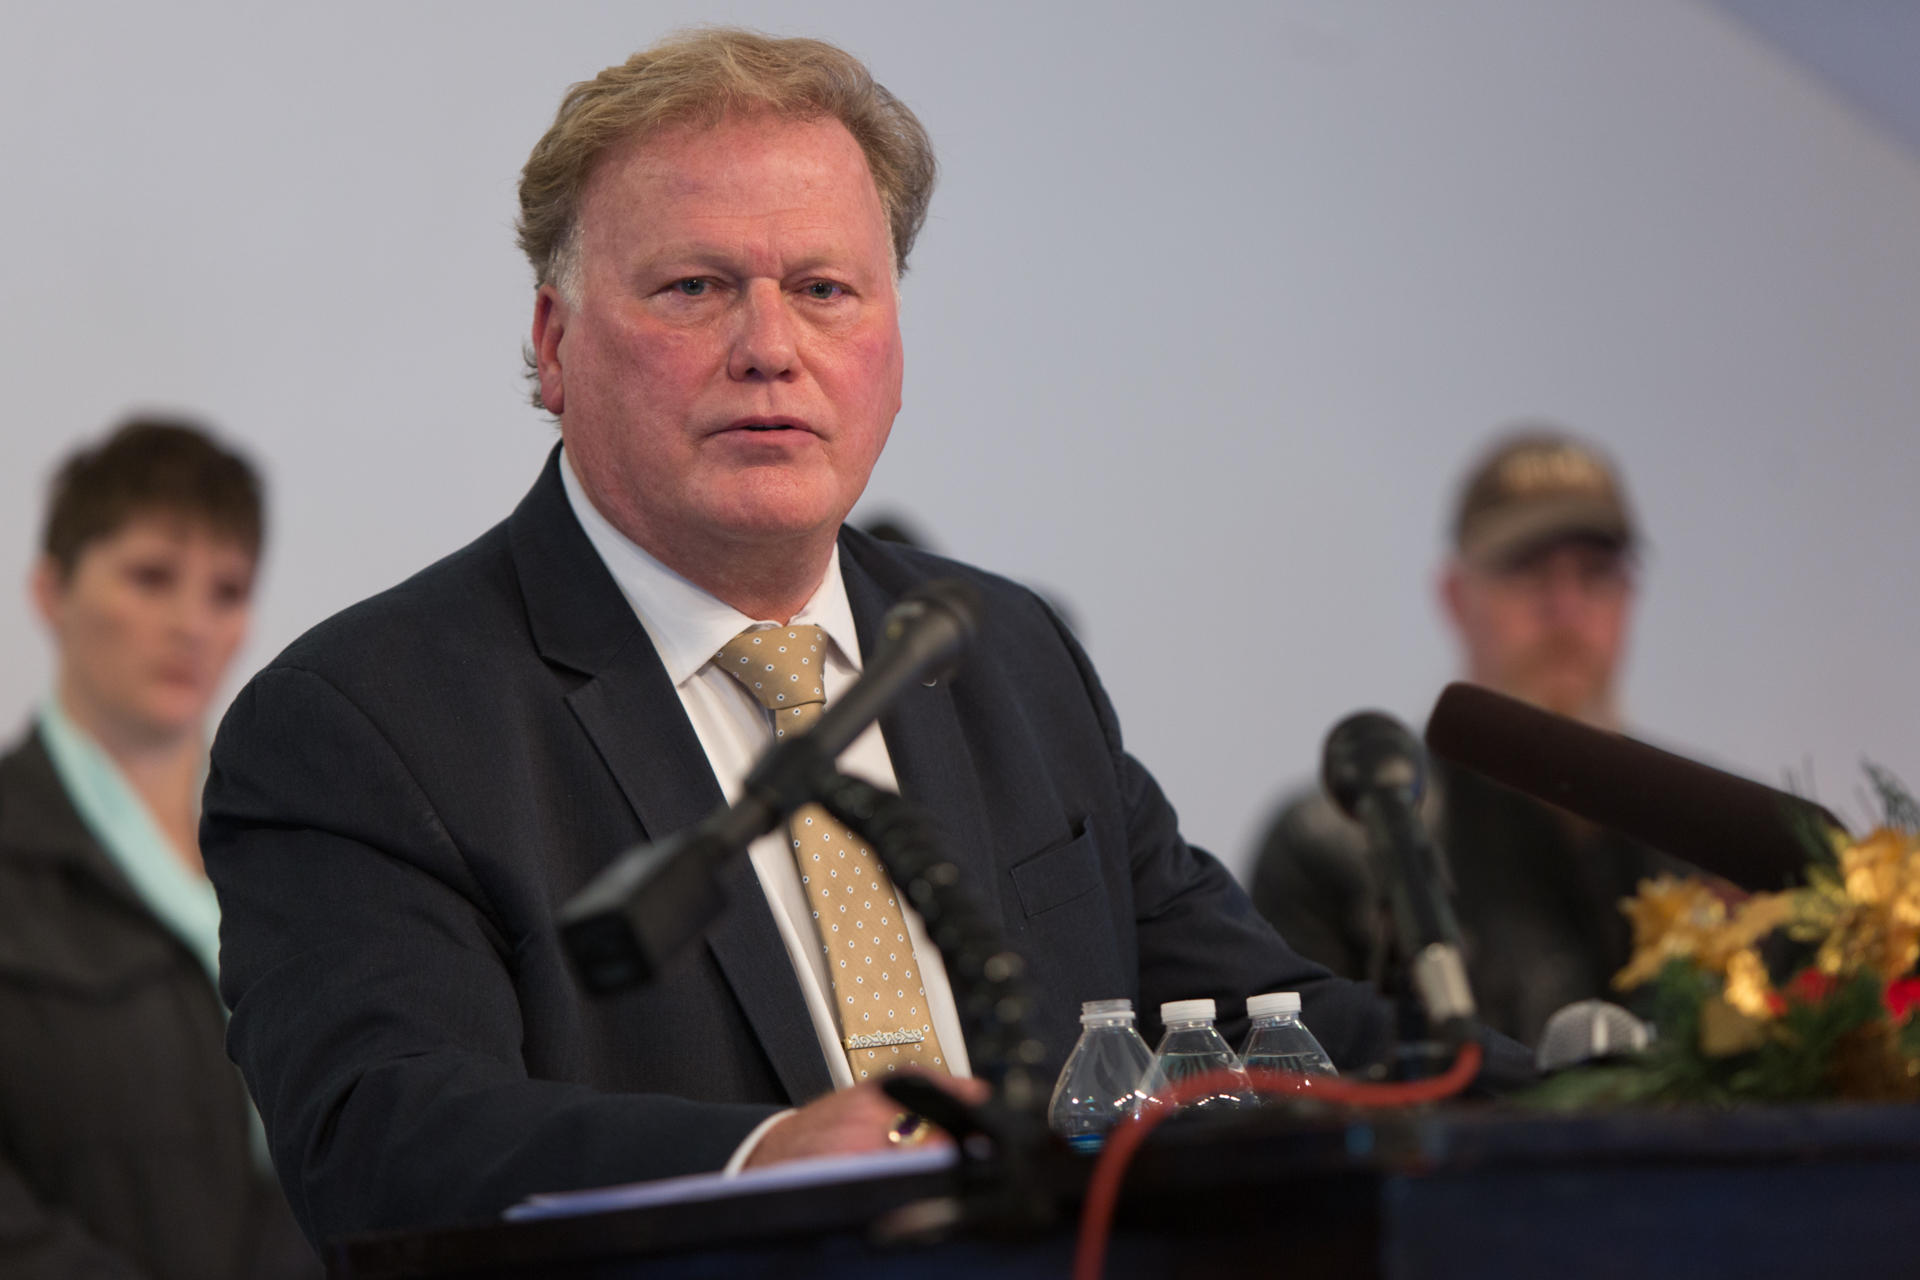 Kentucky Lawmaker Kills Himself Amid Sexual Assault Allegations, Officials Say